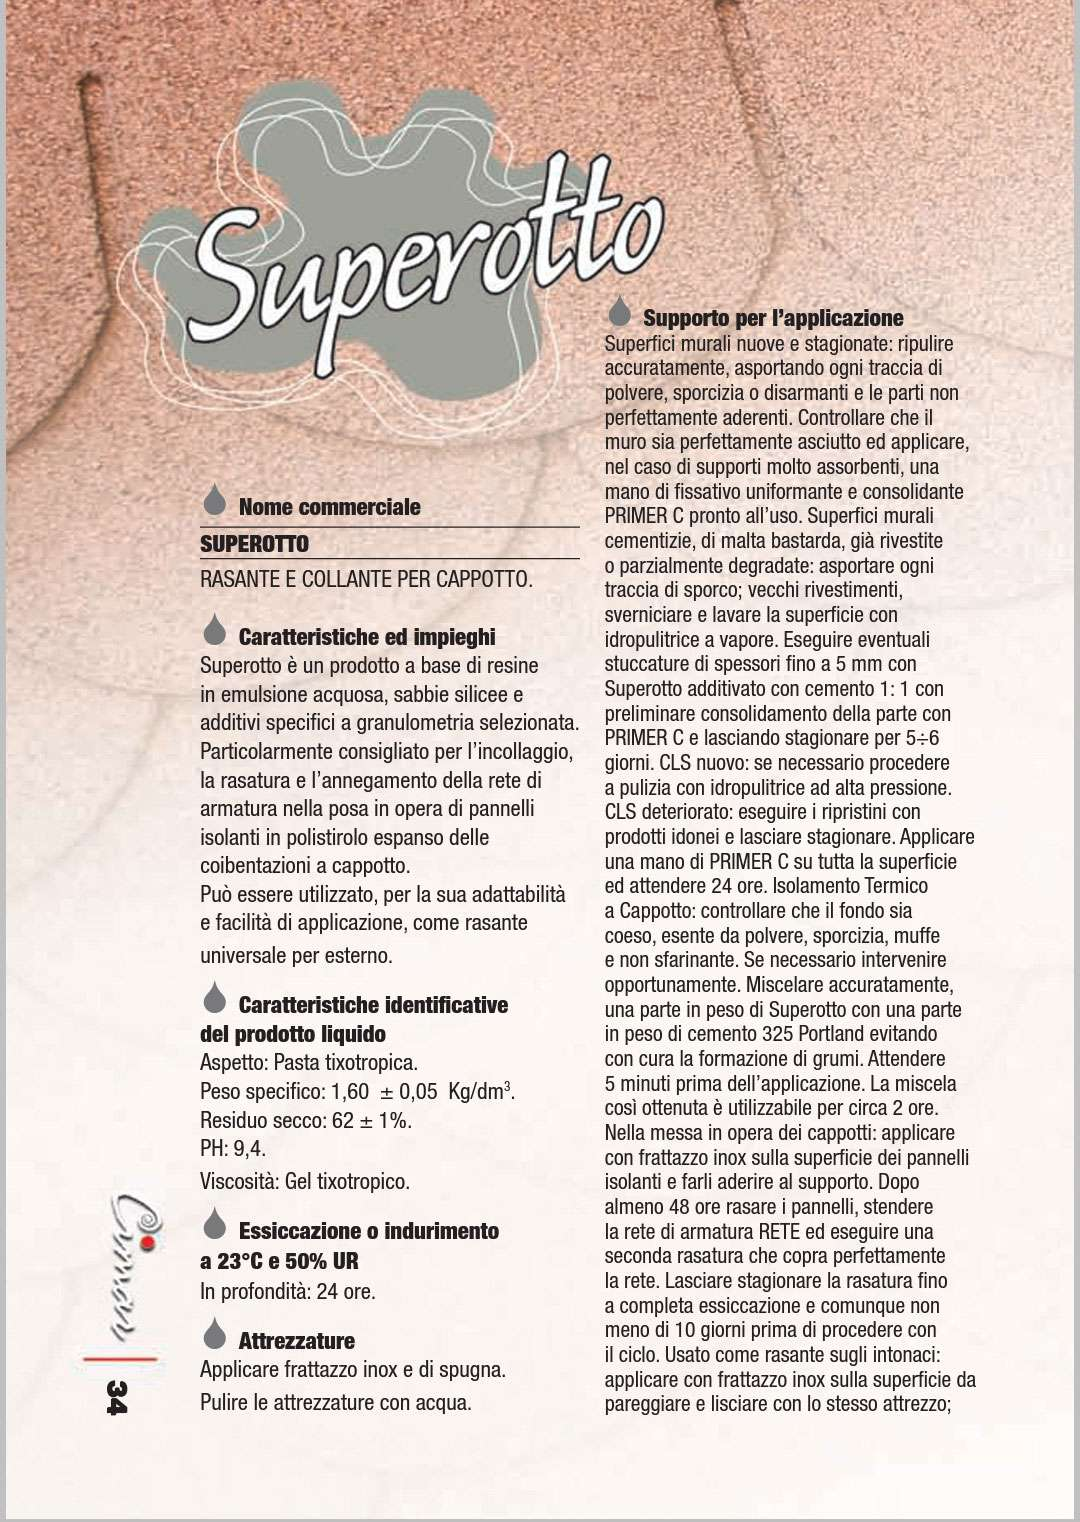 CIM-SUPEROTTO_collante_per_cappotto